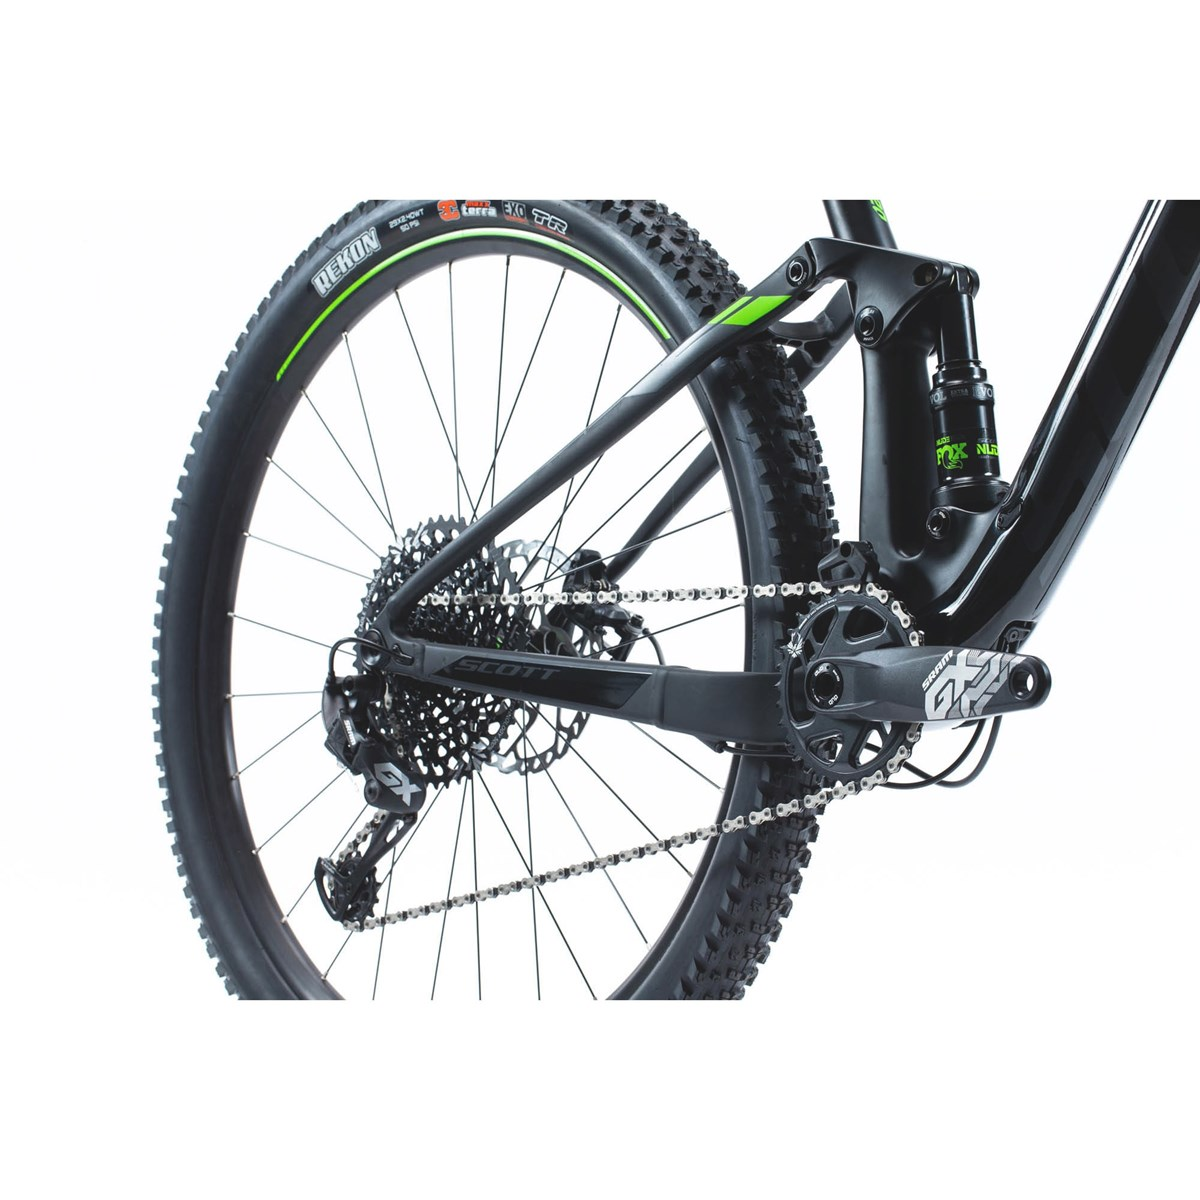 25355480dc6 2019 Scott Spark 920 Carbon Full Suspension Mountain Bike £3,039.20